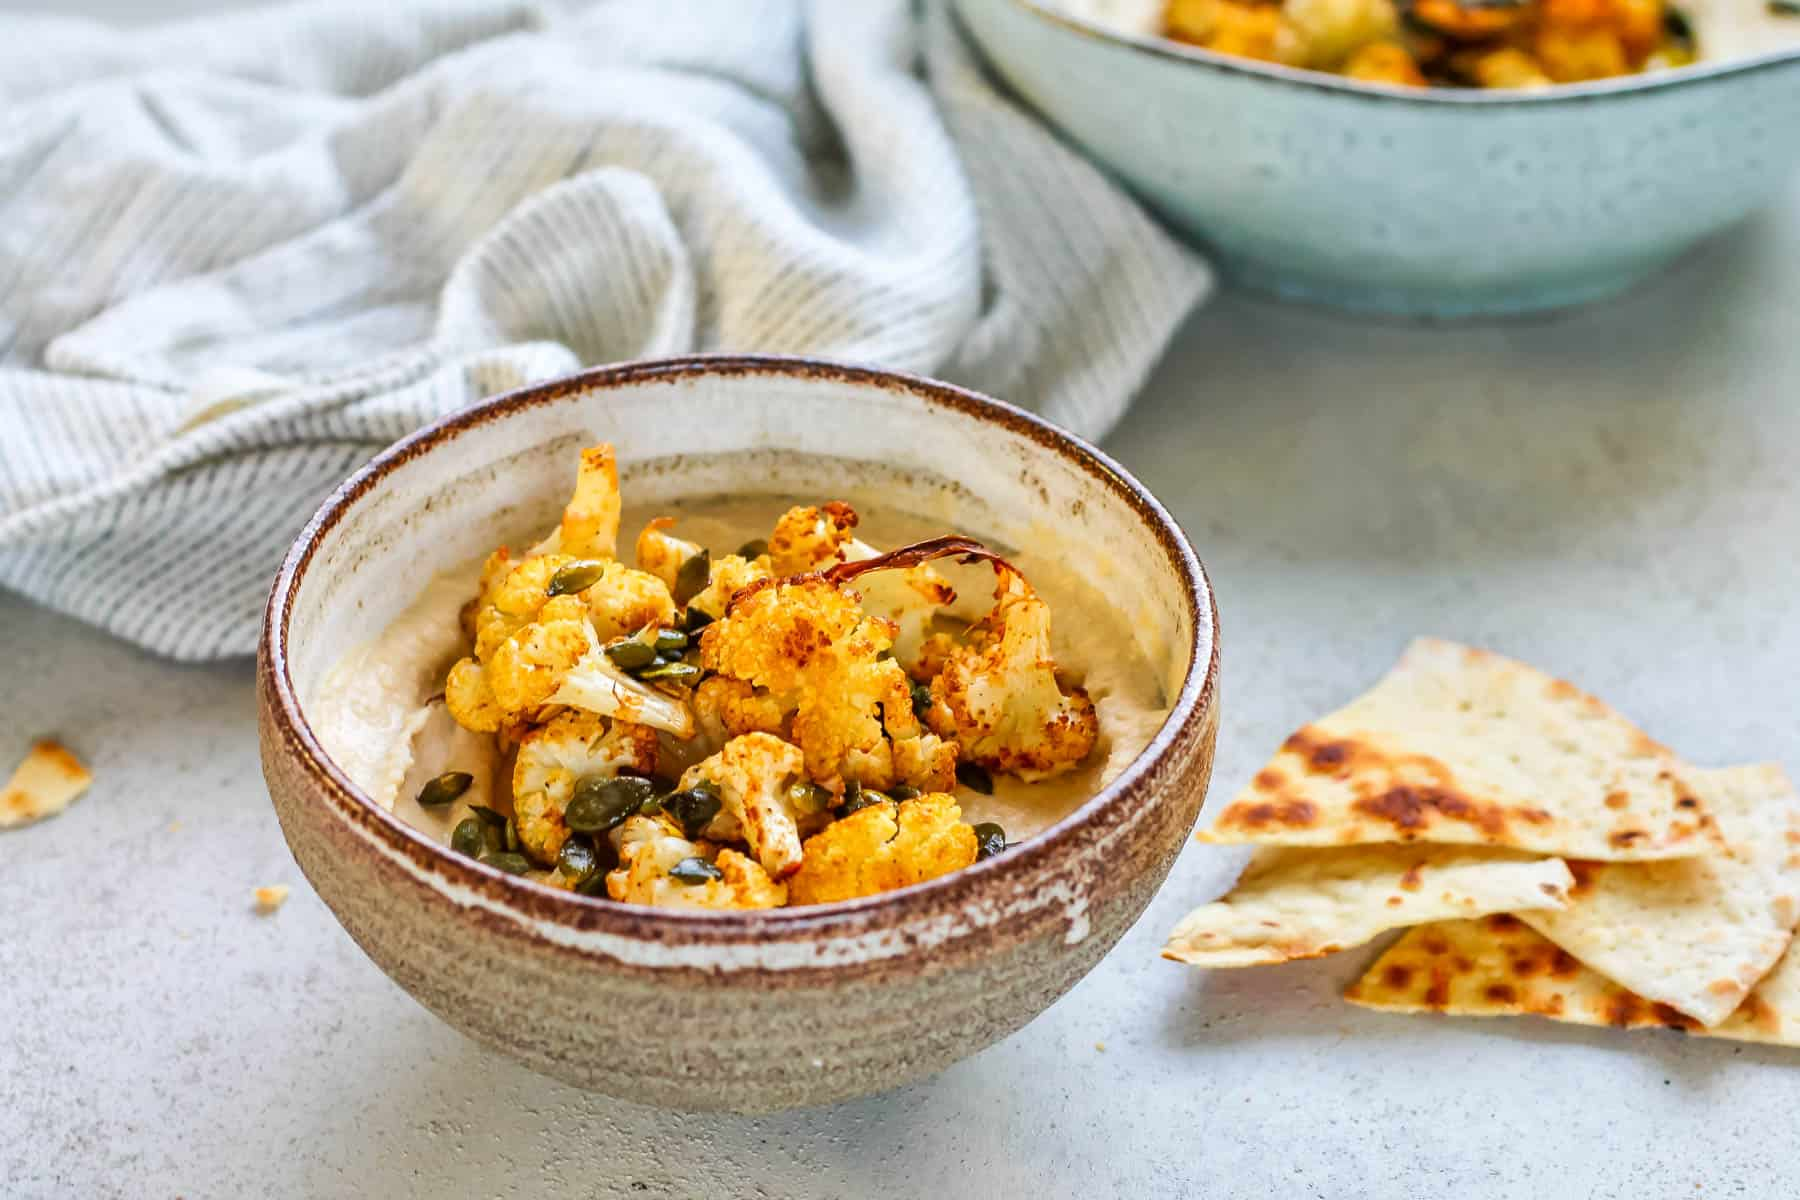 a ceramic bowl with hummus and roasted cauliflower